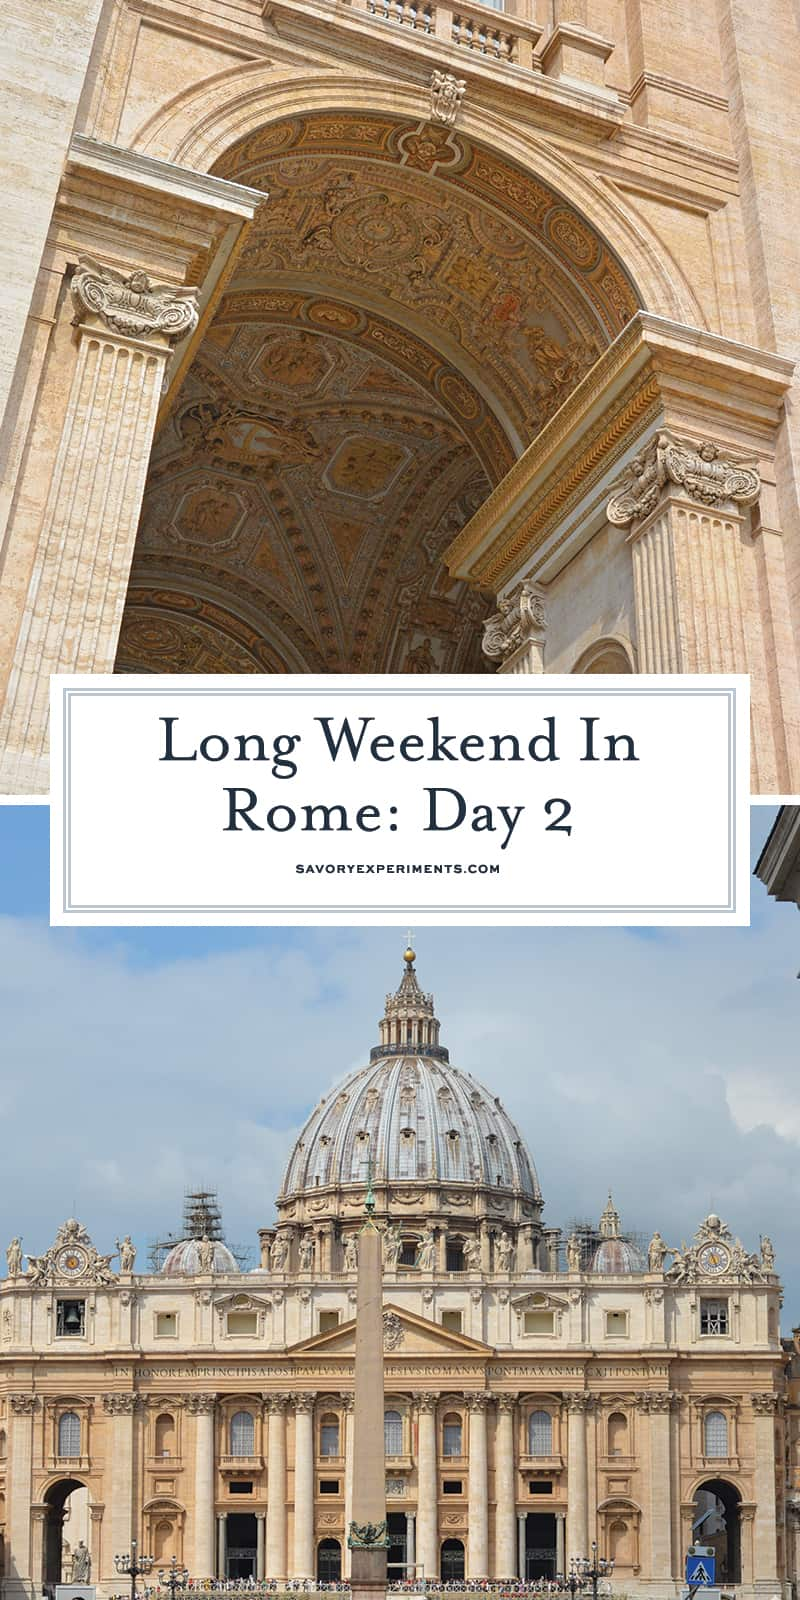 Day 2 itinerary includes a visit to Vatican City including St. Peter's Square and Basilica, Sistine Chapel, Vatican Museums. #triptovaticancity #romeitaly www.savoryexperiments.com